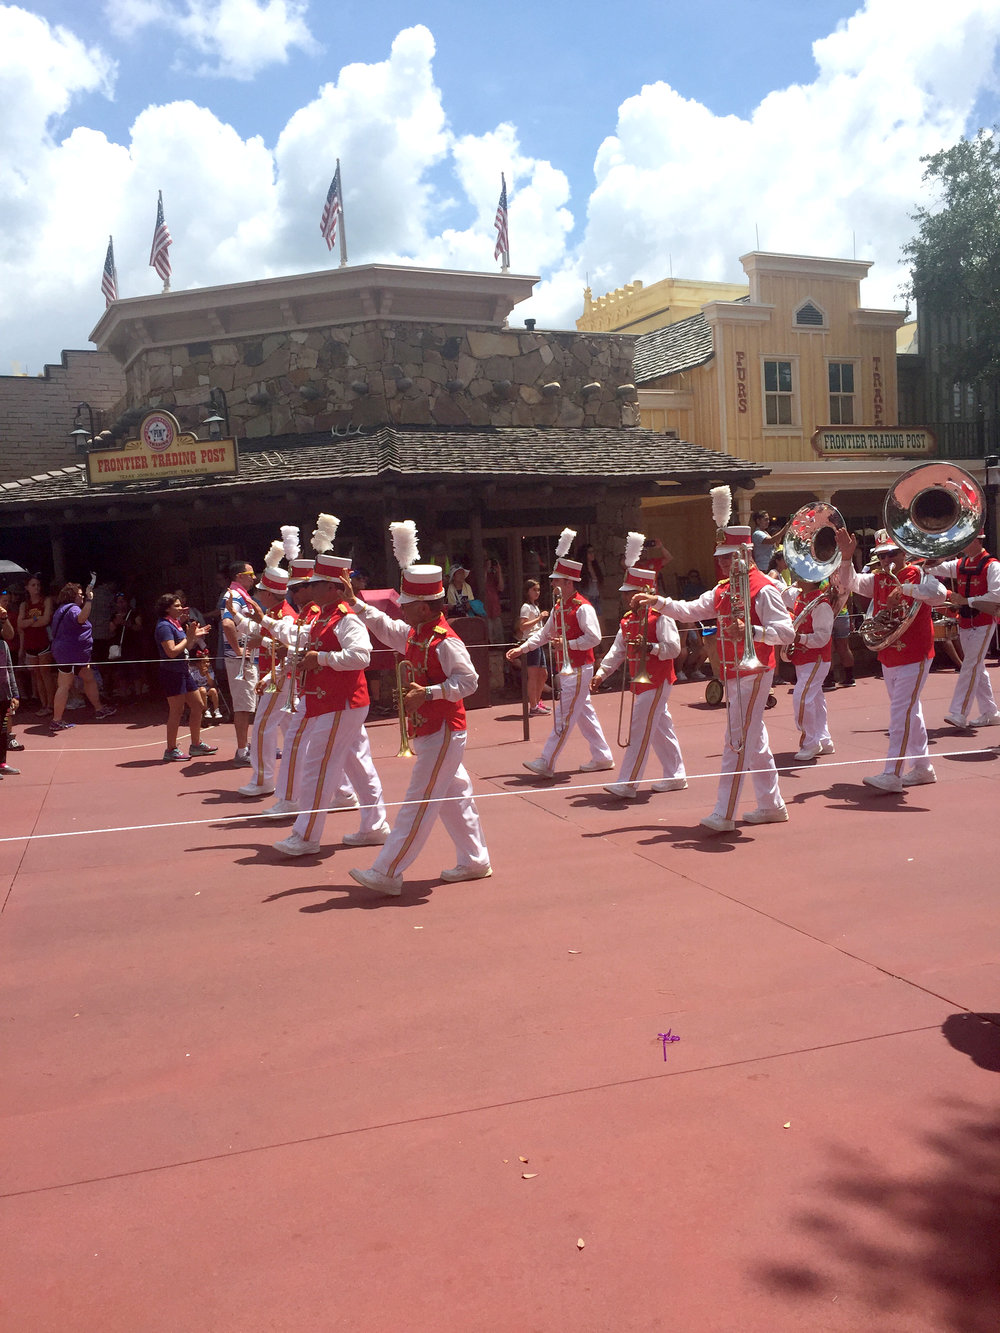 I love that the parade starts with an old-school marching band! It just brings Main Street to life!